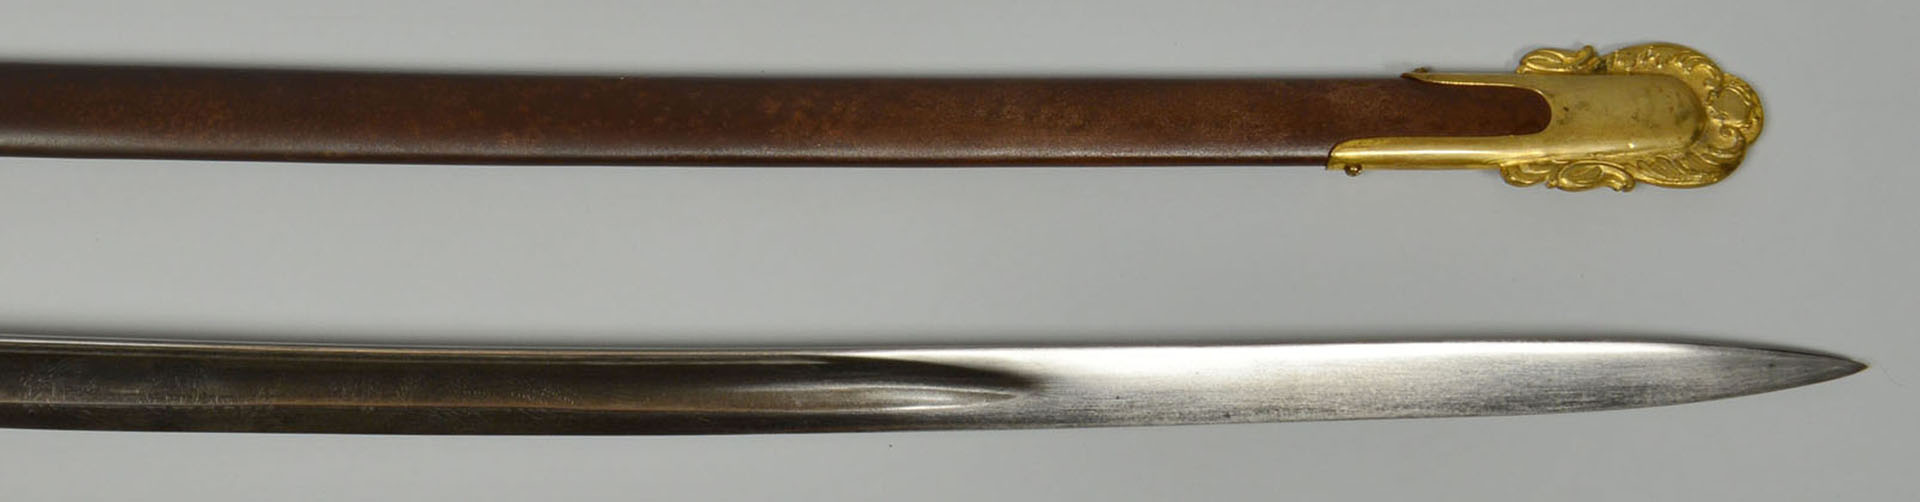 Lot 84: Ames M1850 Staff and Field Officers Sword